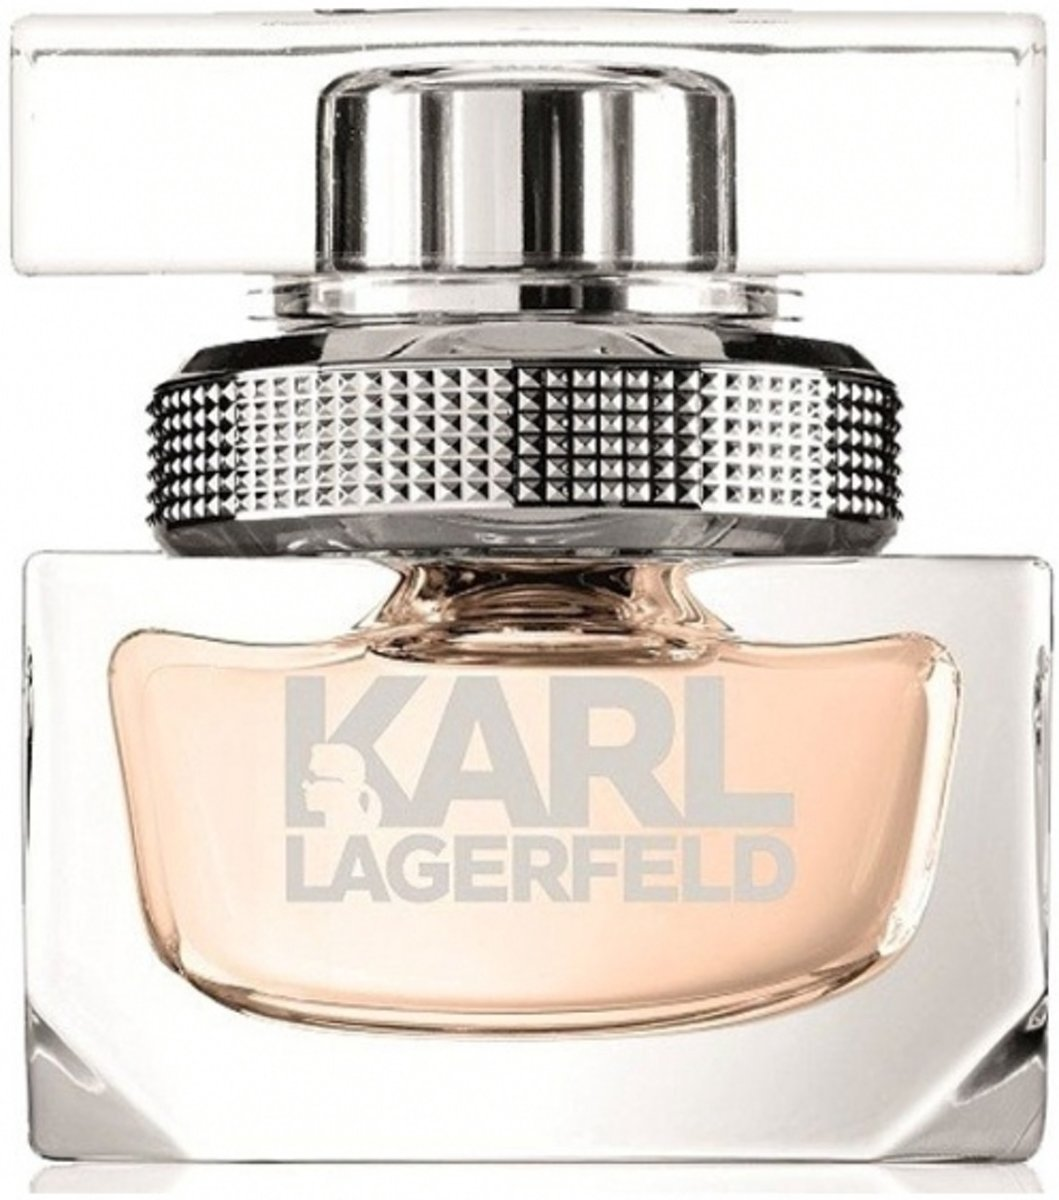 Karl Lagerfeld - 85 ml - Eau de parfum - For Women